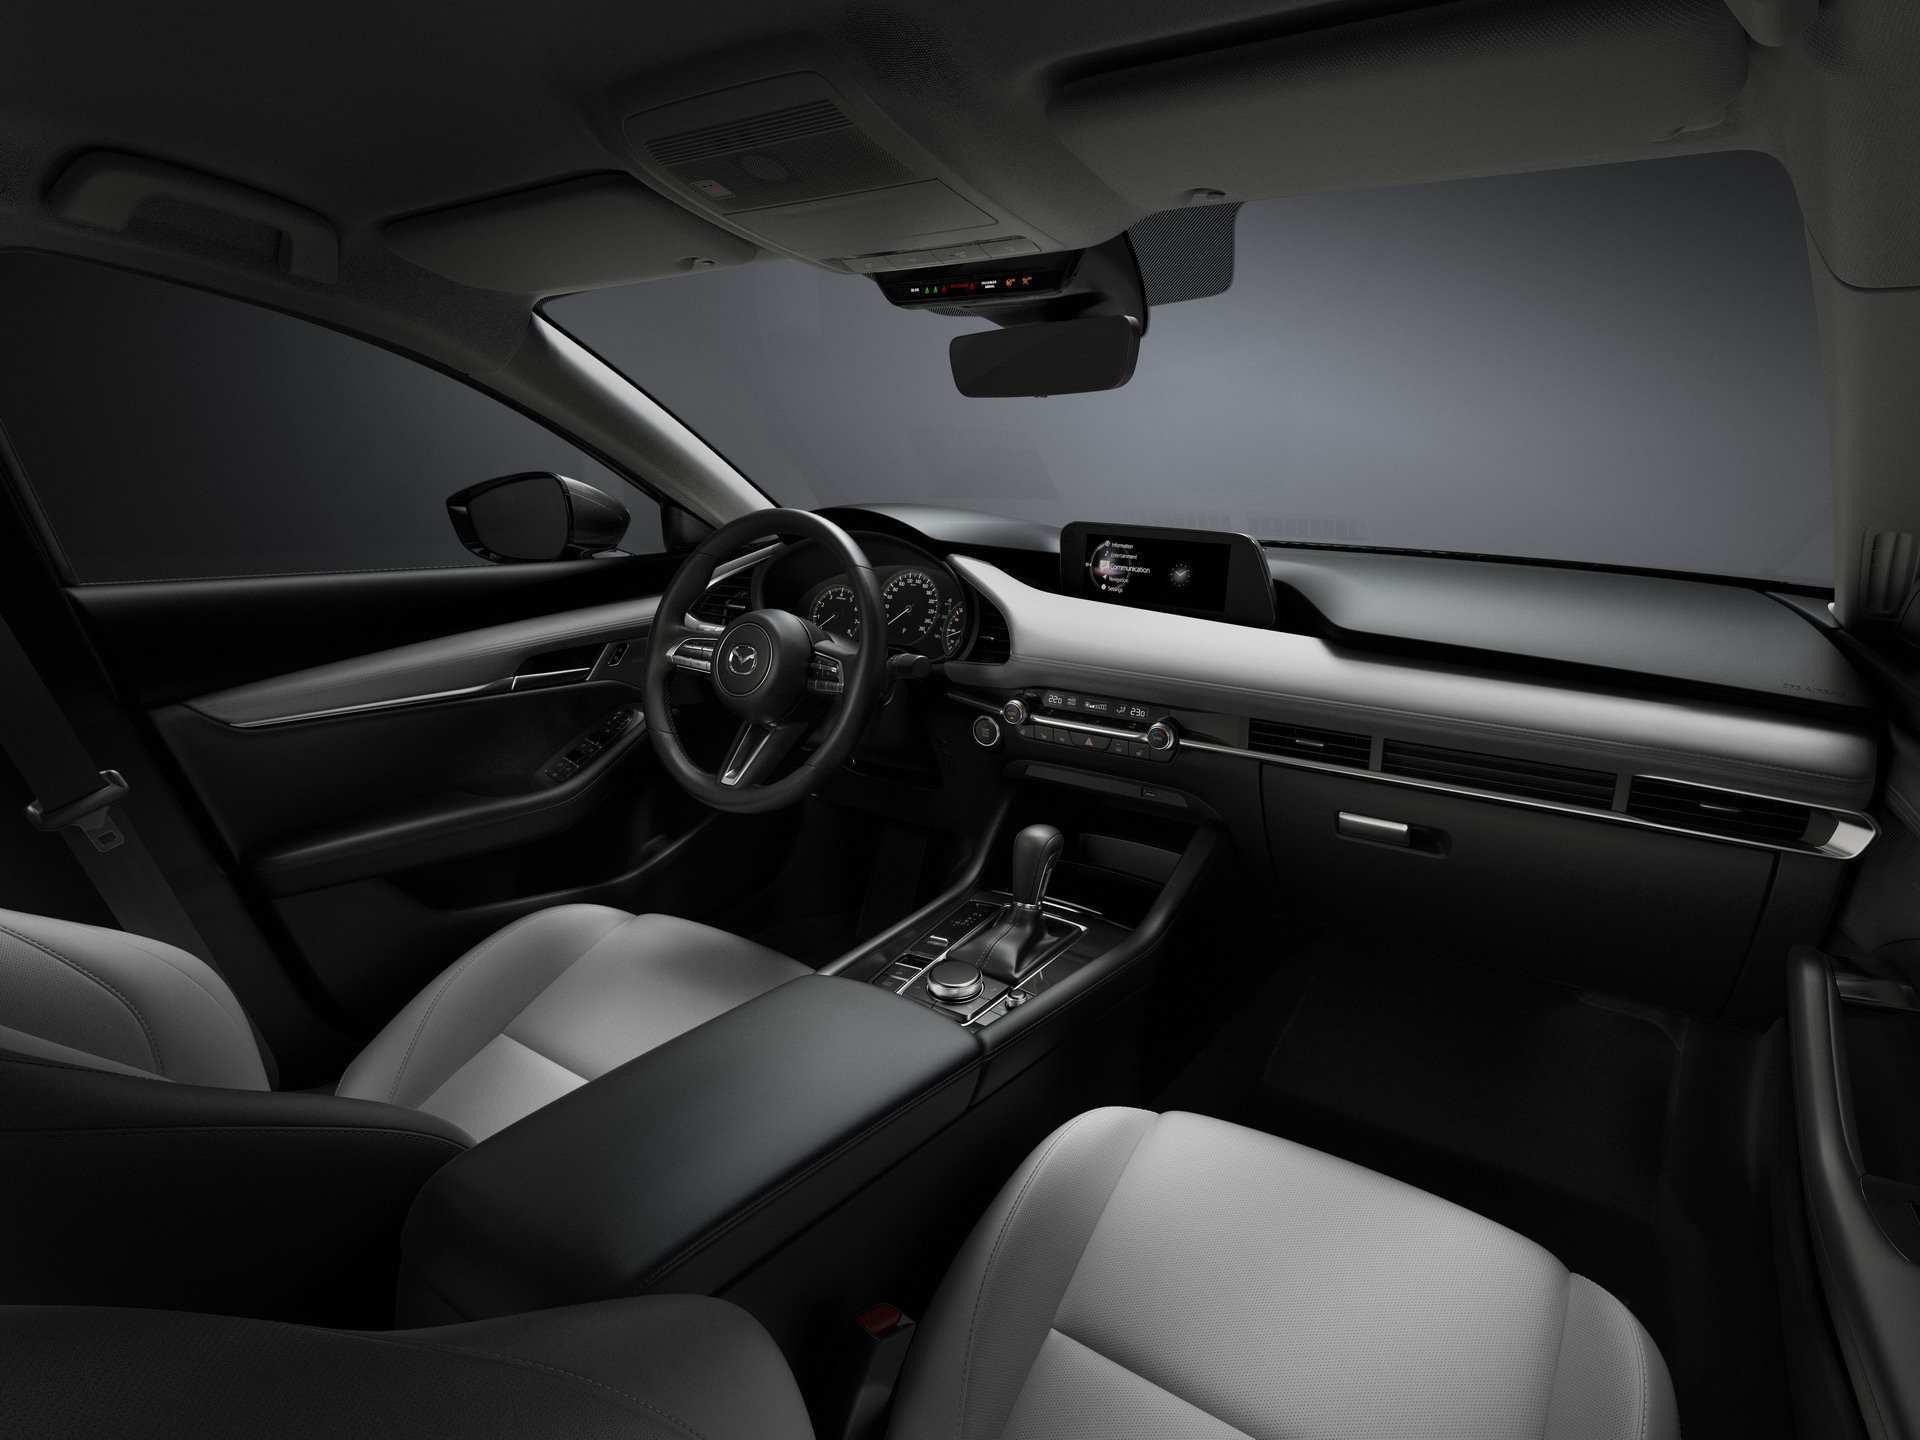 44 All New Mazda 3 2019 Interior Picture with Mazda 3 2019 Interior